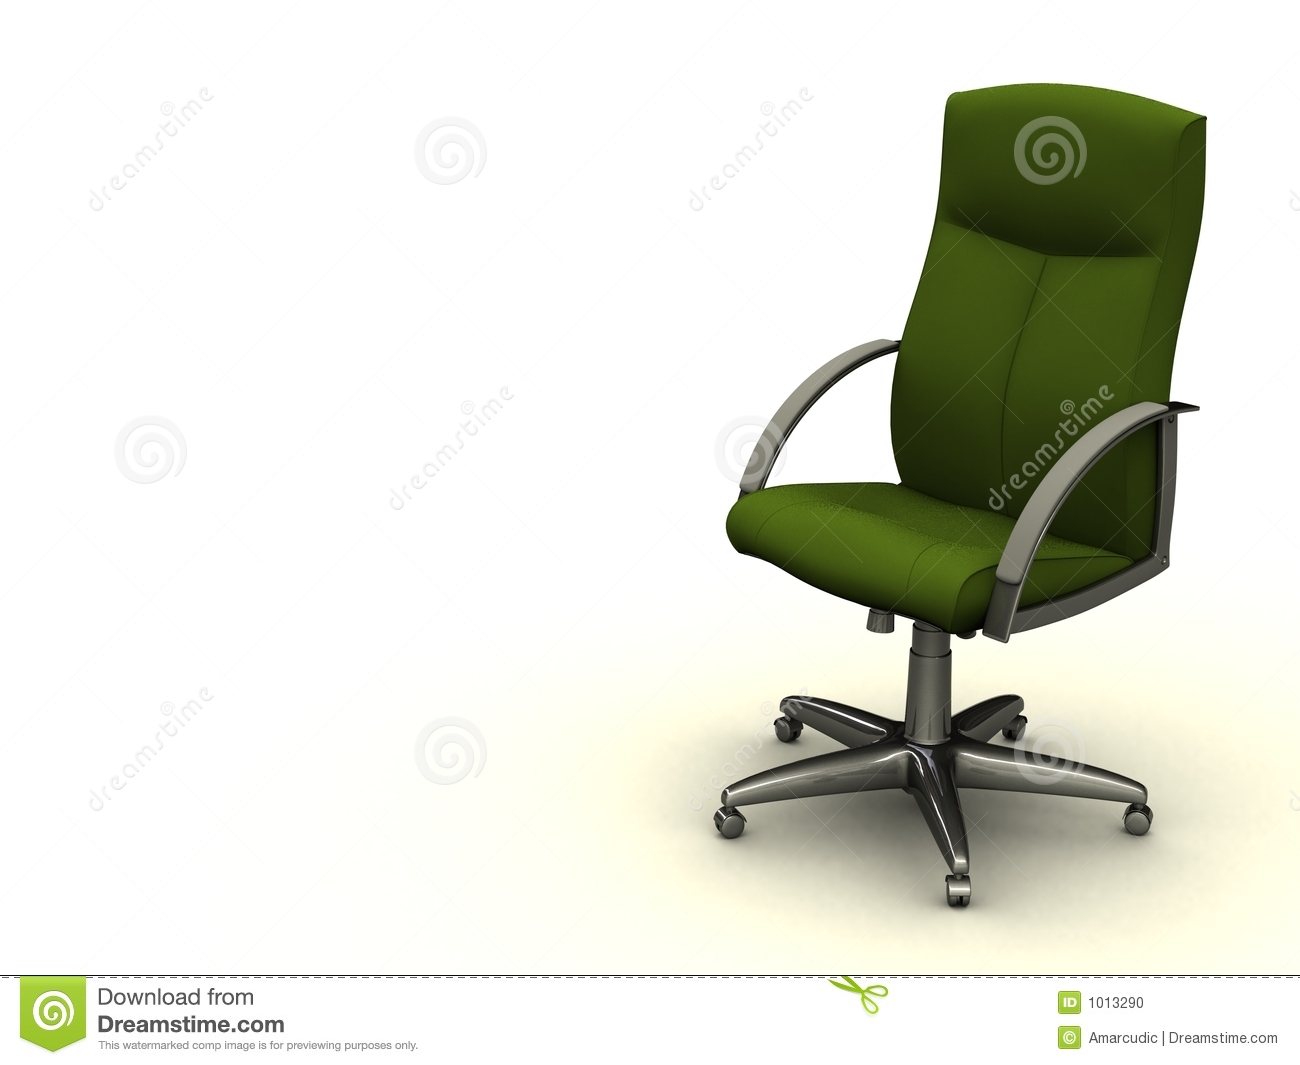 GREEN fice Chair Stock Image